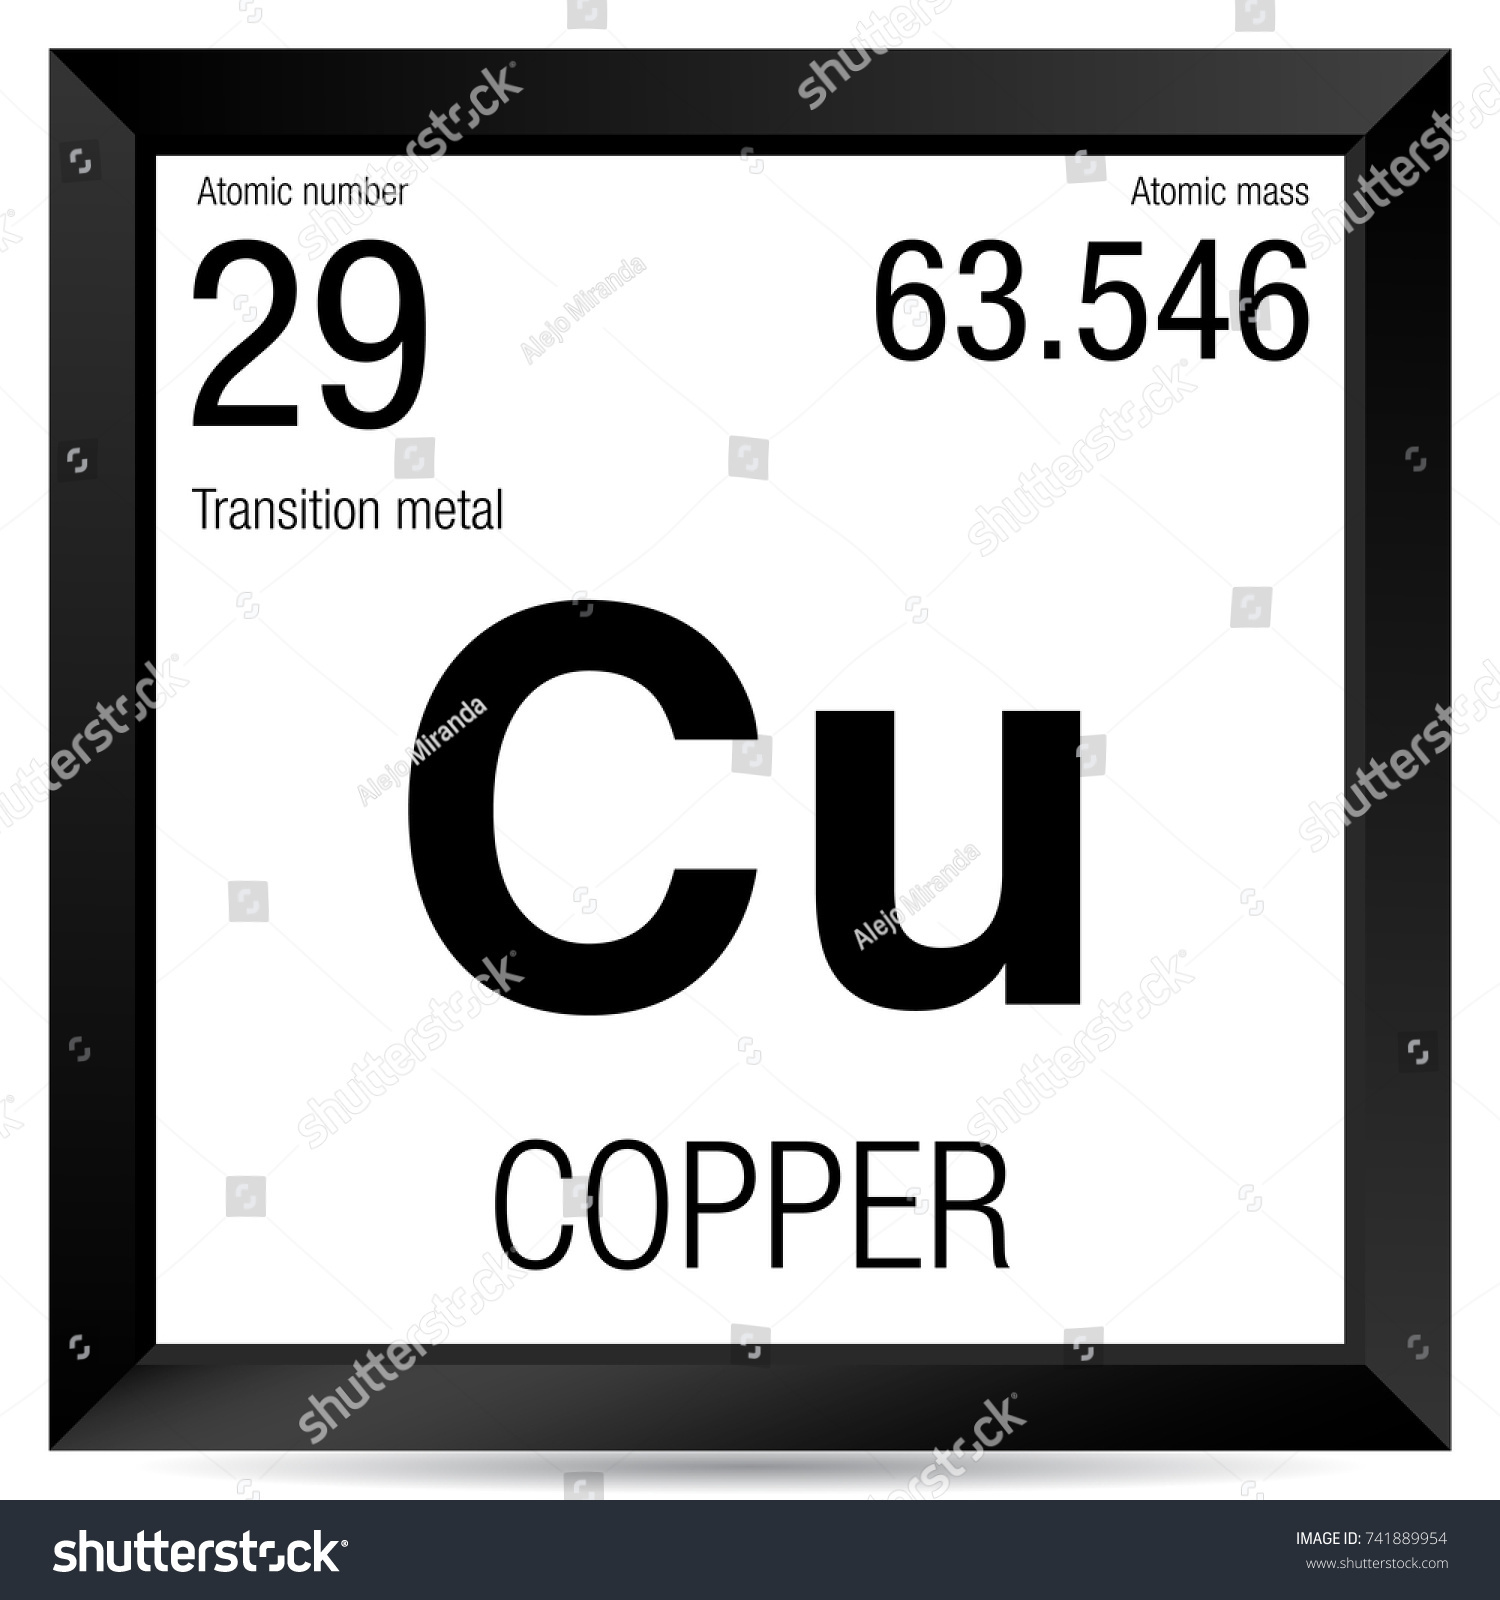 Periodic table of elements copper image collections periodic copper symbol element number 29 periodic stock vector 741889954 copper symbol element number 29 of the gamestrikefo Gallery